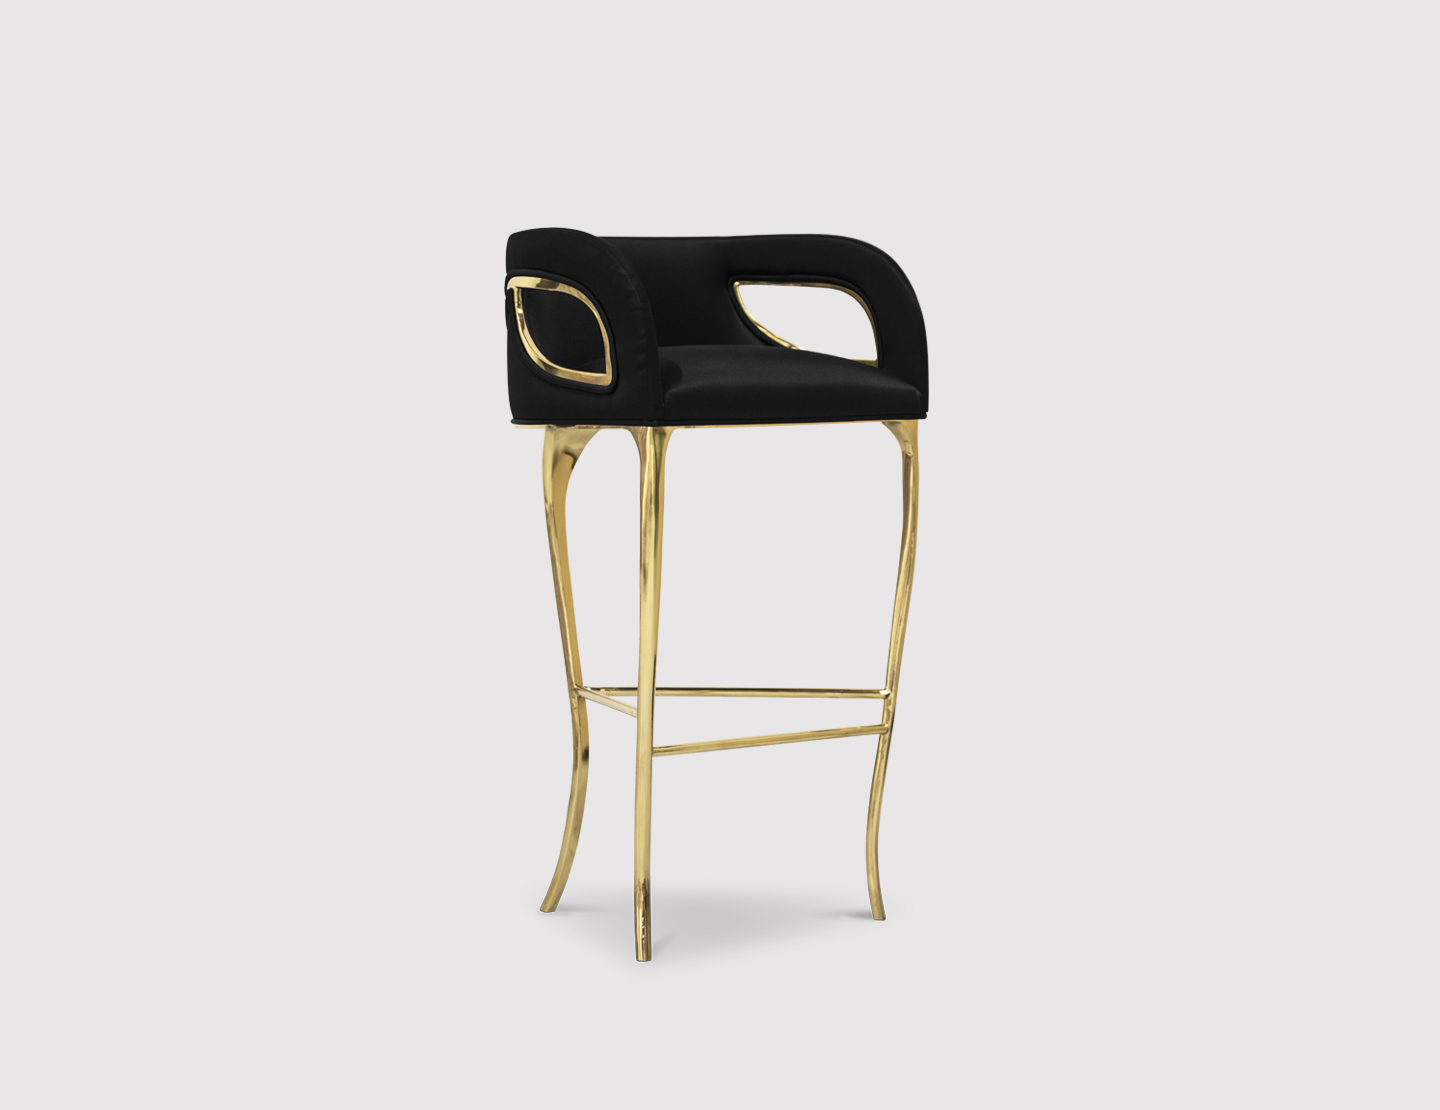 CHANDRA Bar stool | Bar stool design by Koket